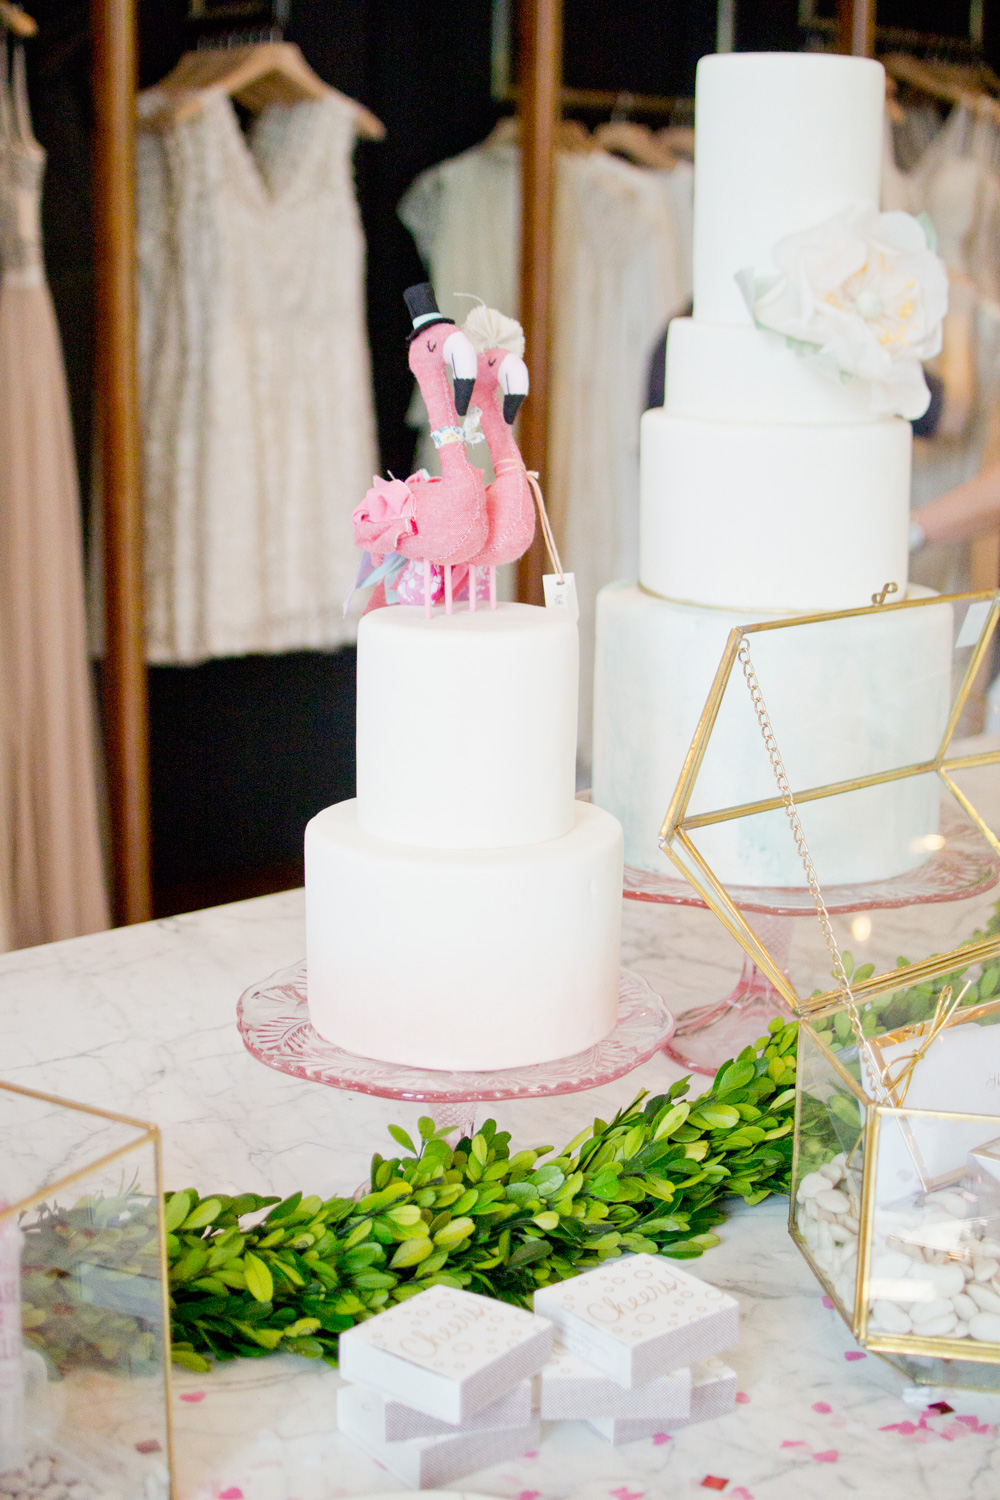 BHLDN Flamingo Wedding Cake Topper at Dress Appointment